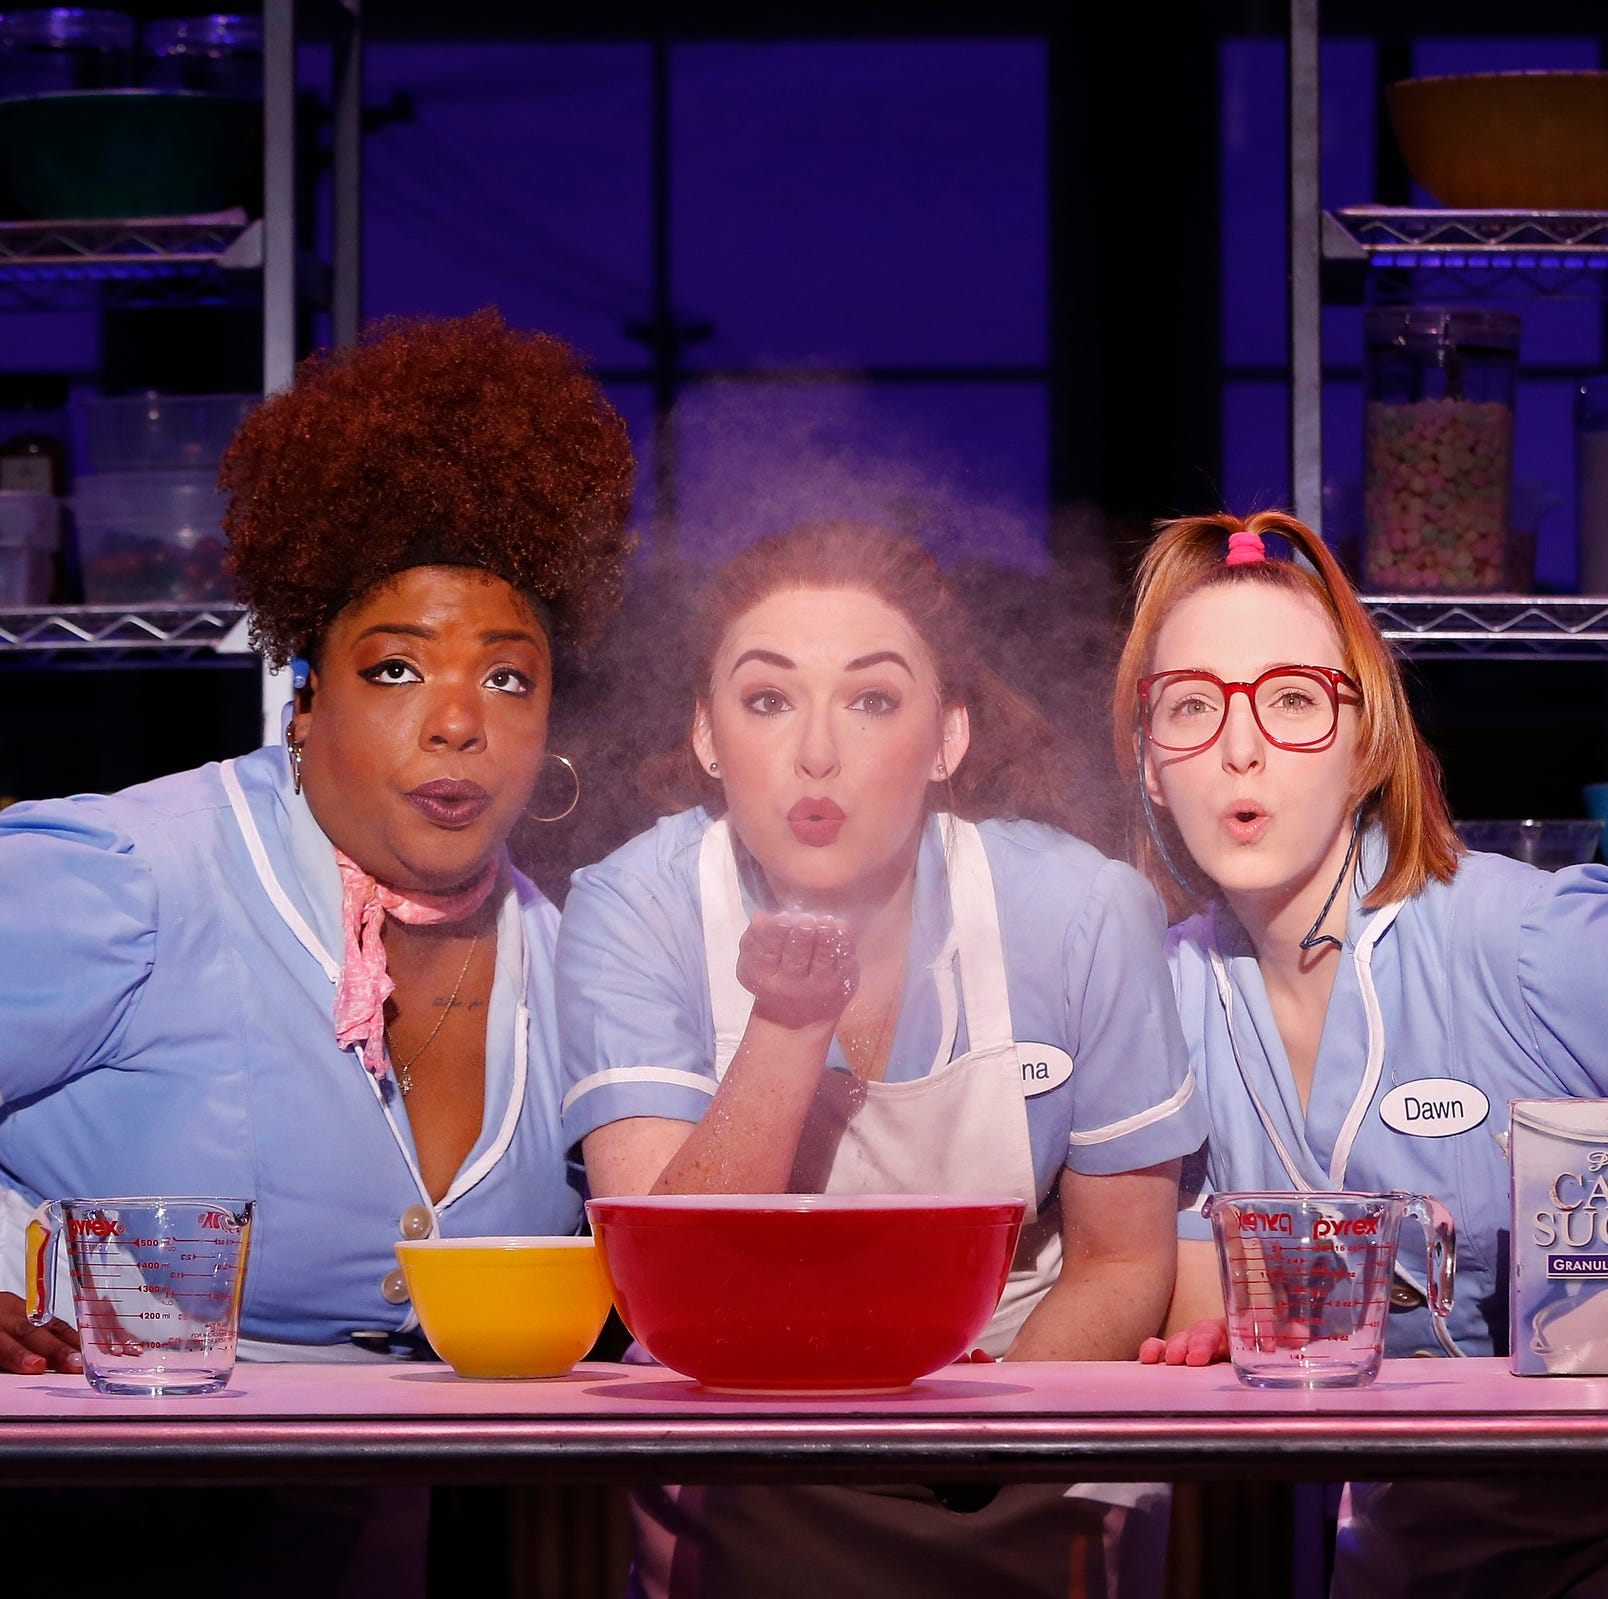 The weekend: 'Waitress' at the Fisher, Mother's Day at Beacon Park, Color Run in Ypsilanti